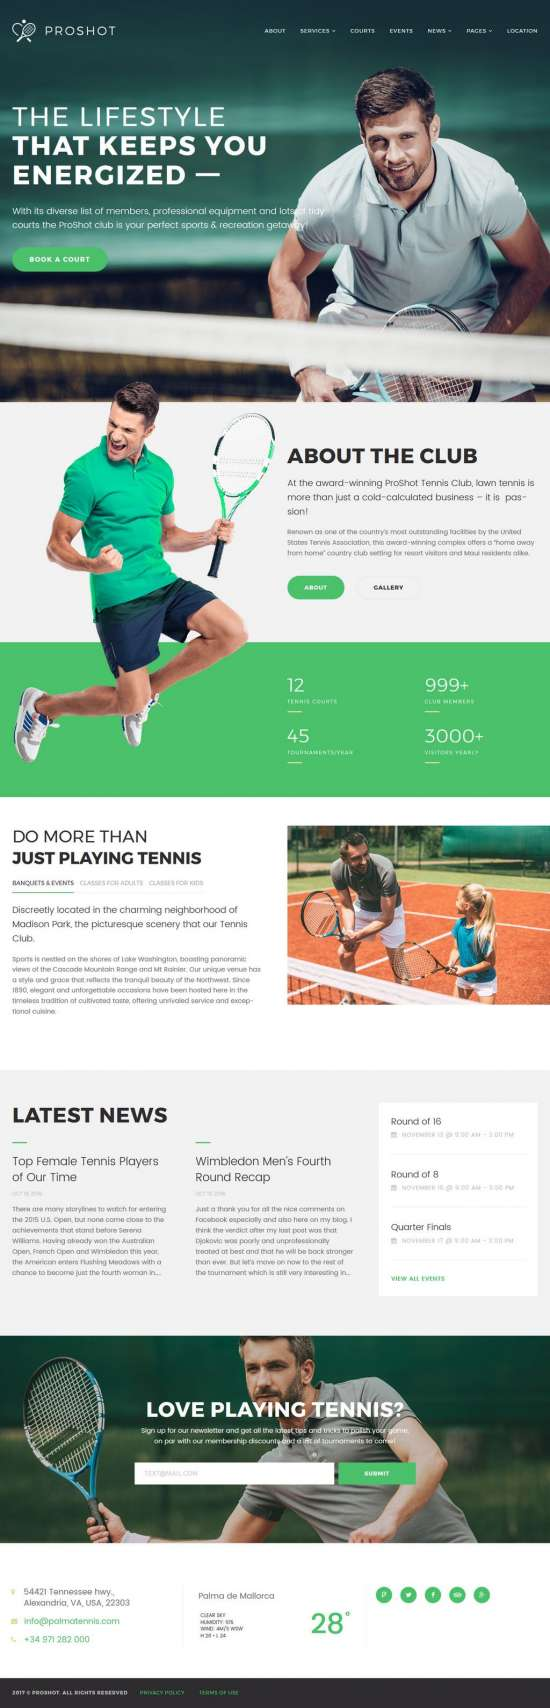 proshot wordpress theme sports theme 01 550x1708 - ProShot WordPress Theme